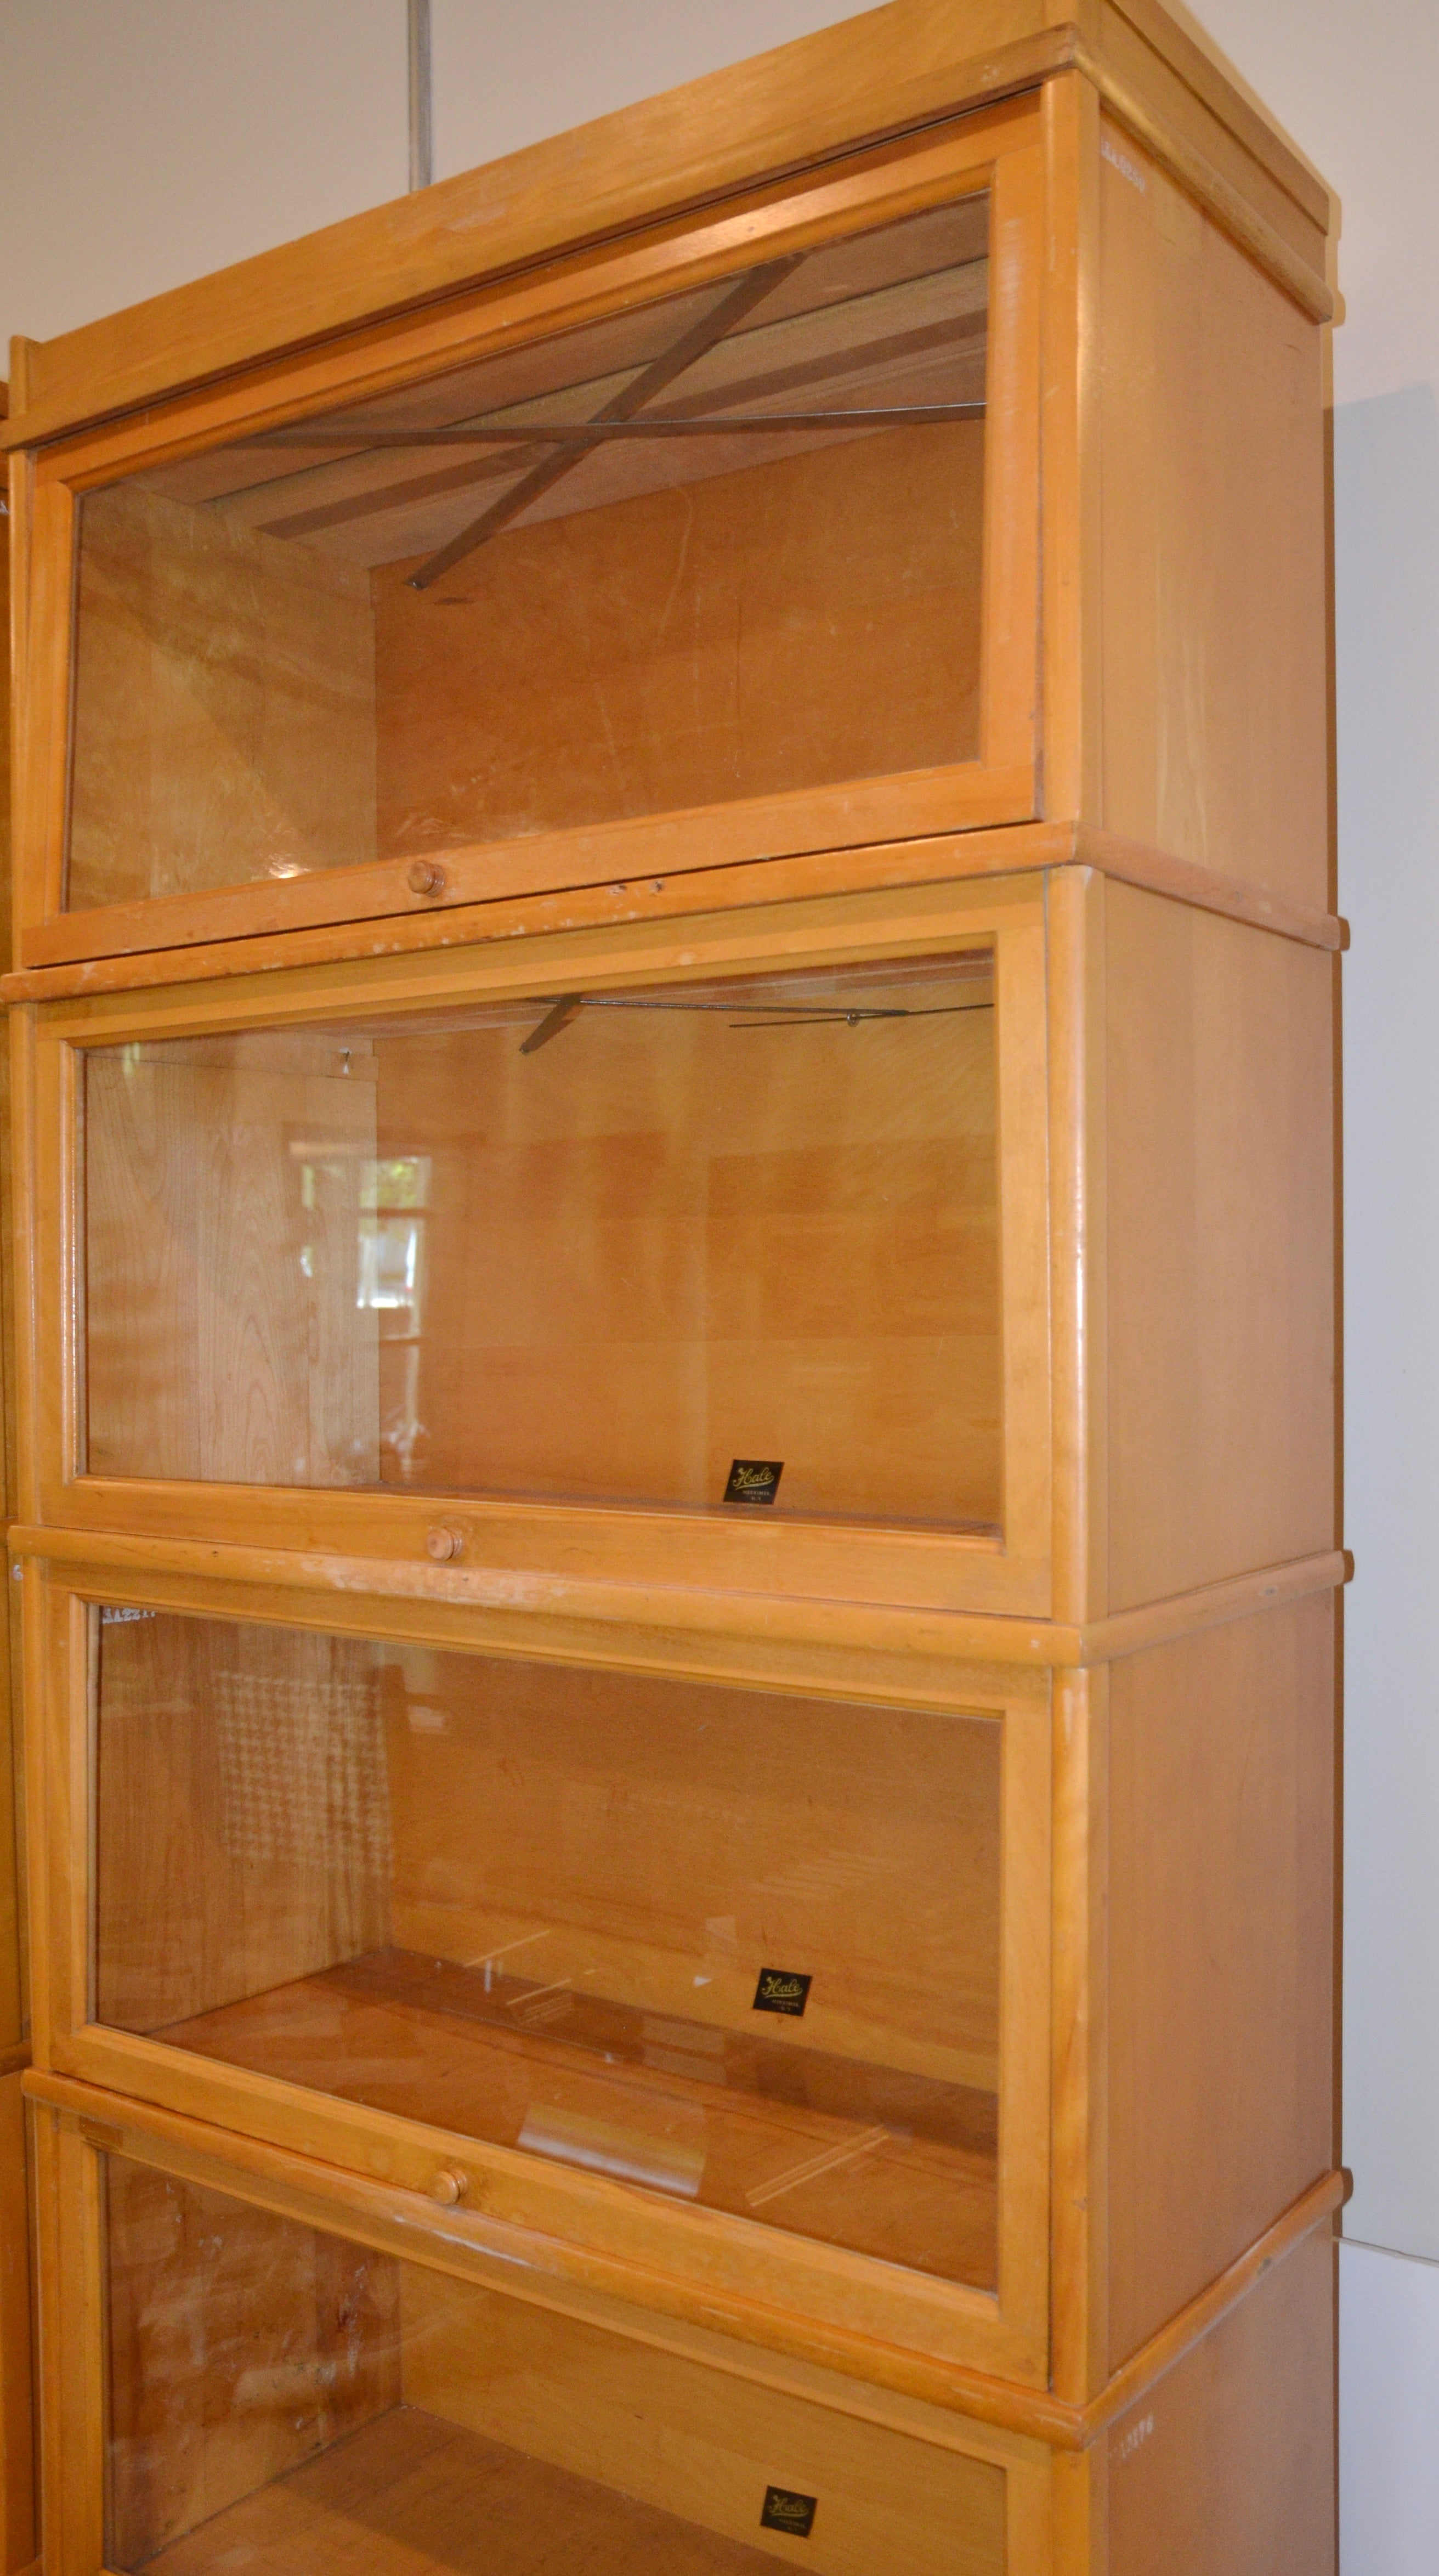 Barrister S Bookcase In Maple And Glass By Hale 1950 At 1stdibs